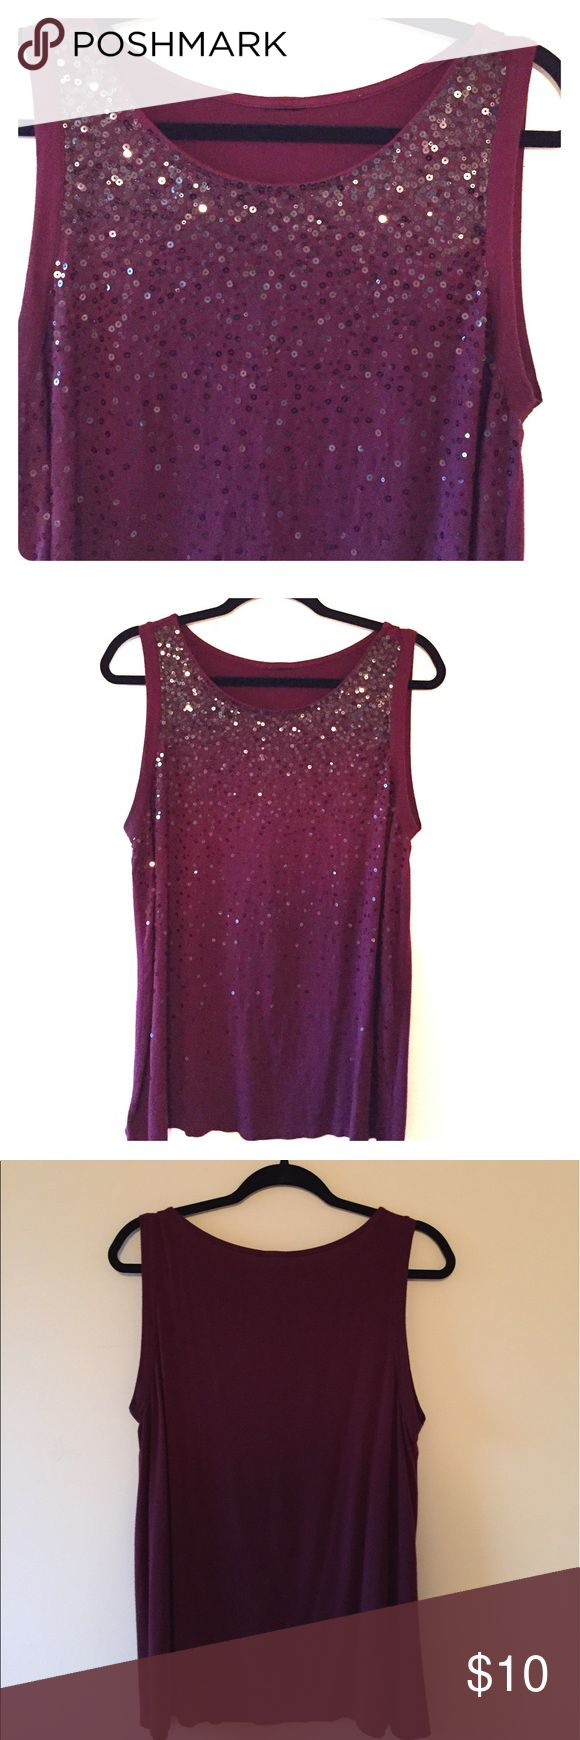 """Sequin Tank Top 1x Sequined Tank Top, size 1x. B 44"""" W 44"""" L 28"""". Rayon/Viscose. Size 1x. Reitmans Tops Tank Tops"""